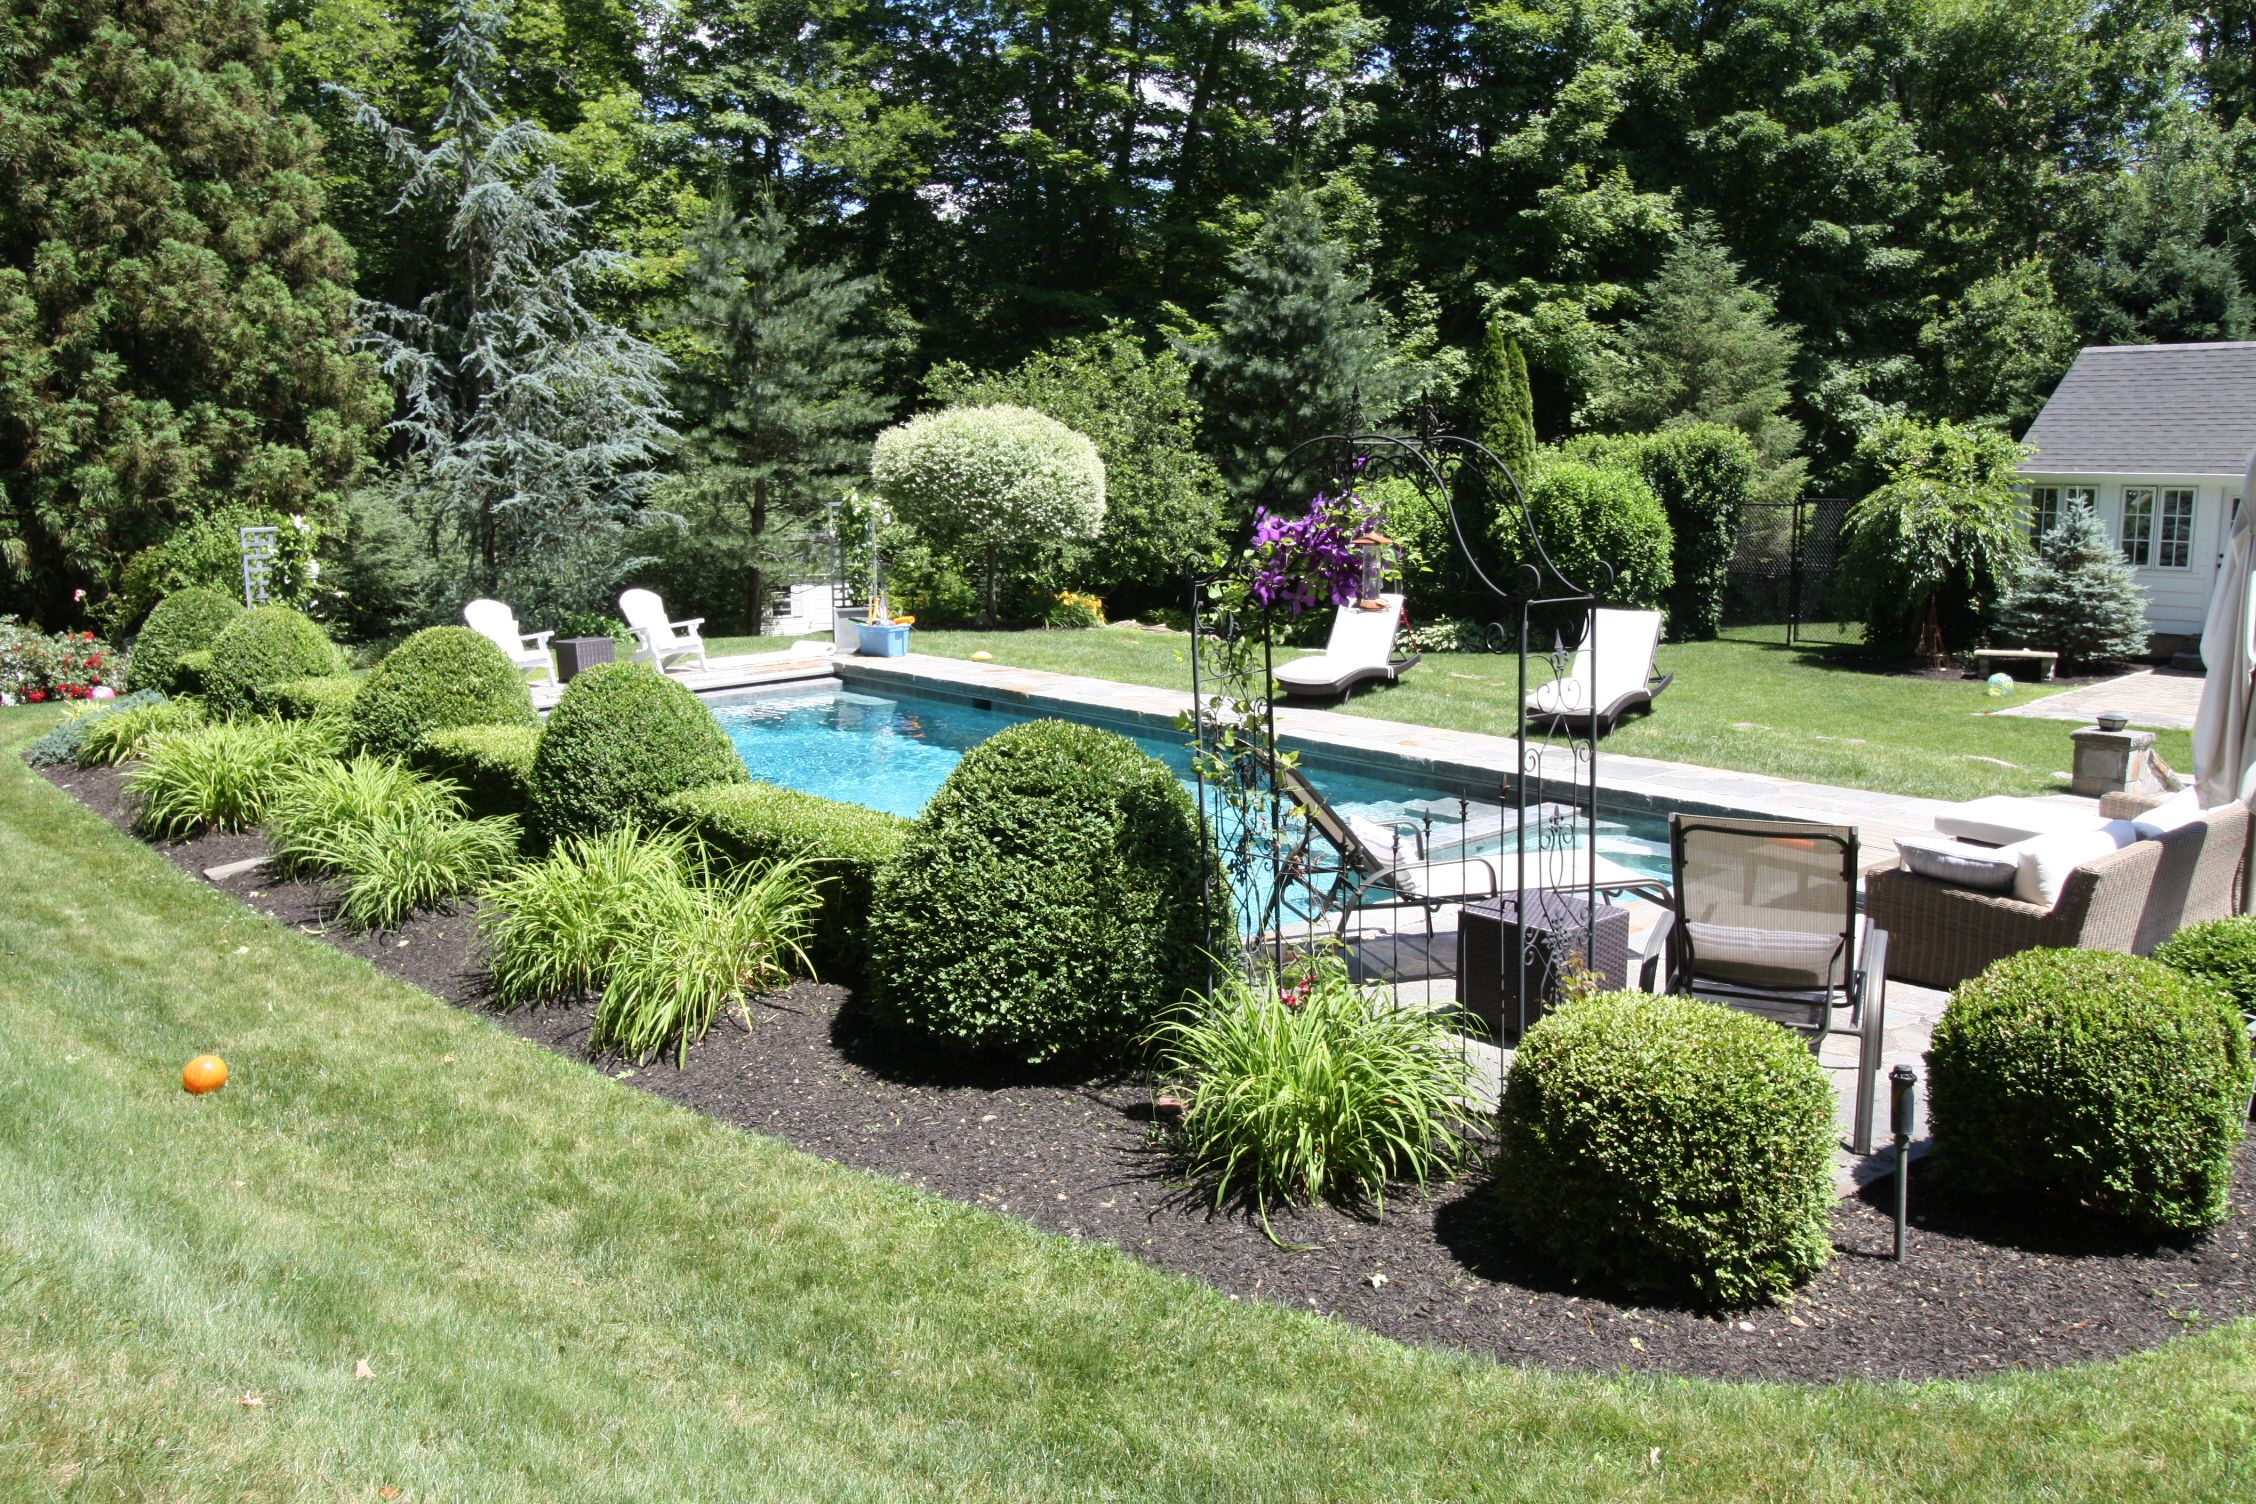 Did you know you can line your pool with a garden? At this home in Fairfield, CT we used a formal garden design to create beautiful aesthetics. #poolgarden #formalgarden #backyardbeauty #landscapes #gardendesign #poollovers #gardenlovers